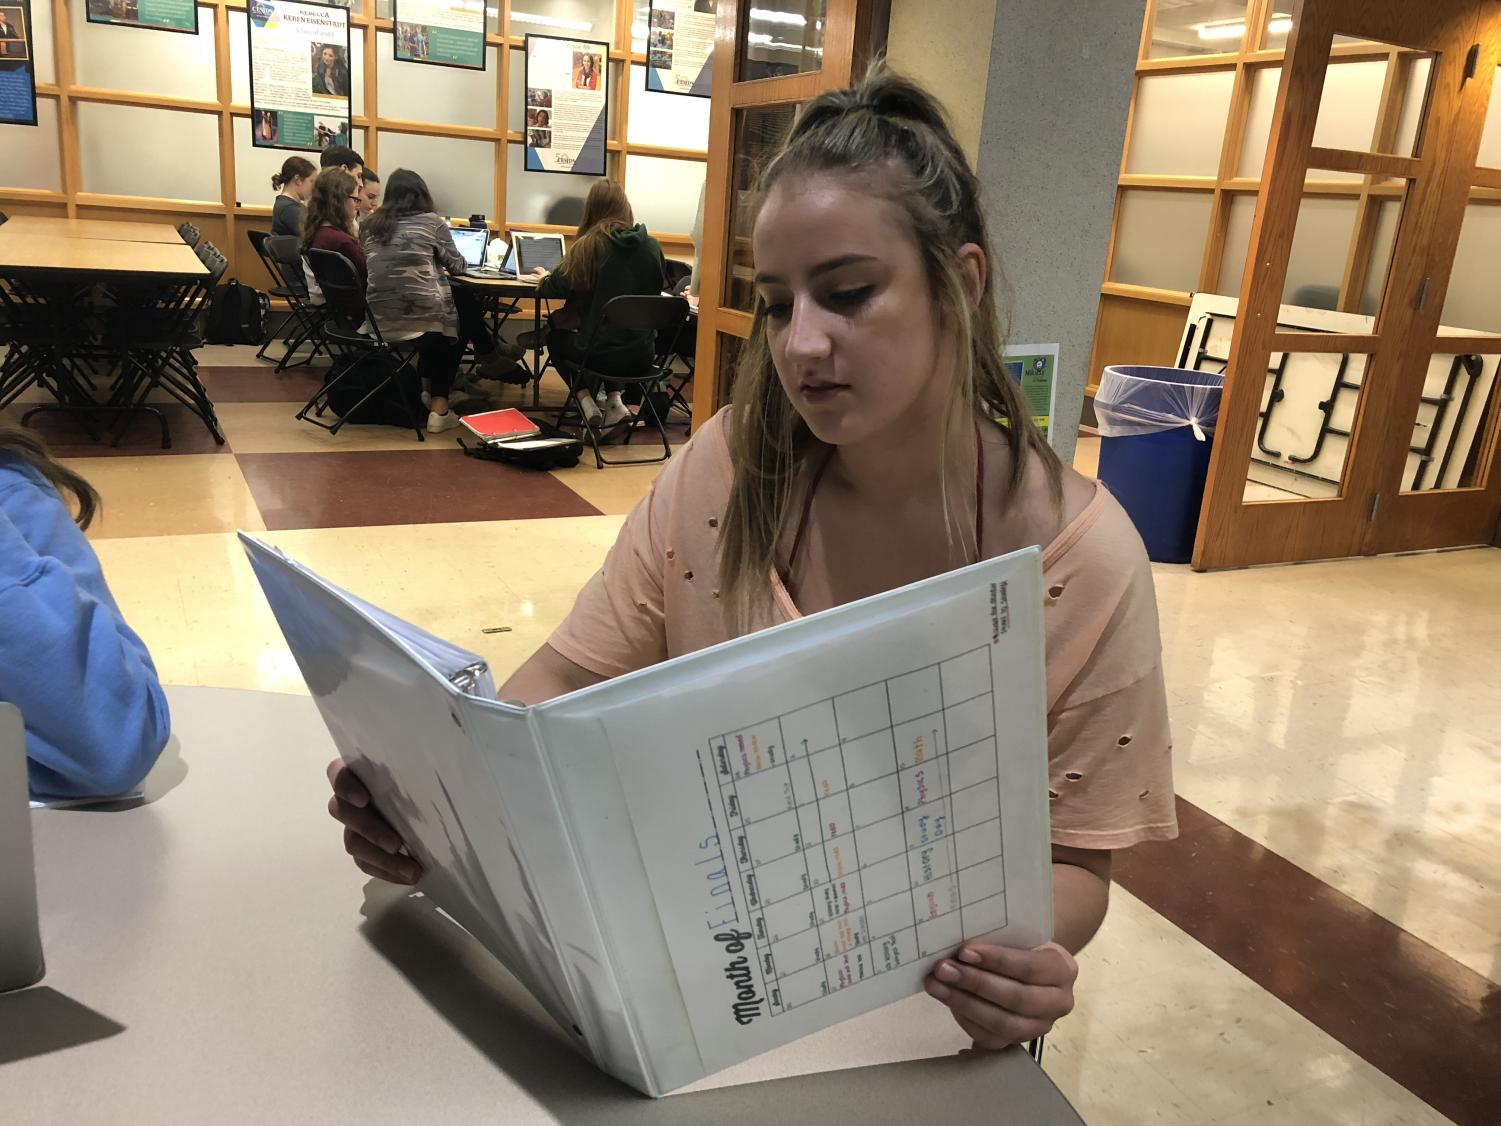 Junior Natalie Buckwold starts preparing for this year's final exams using a review binder. This year's final exams will count for less than previously.